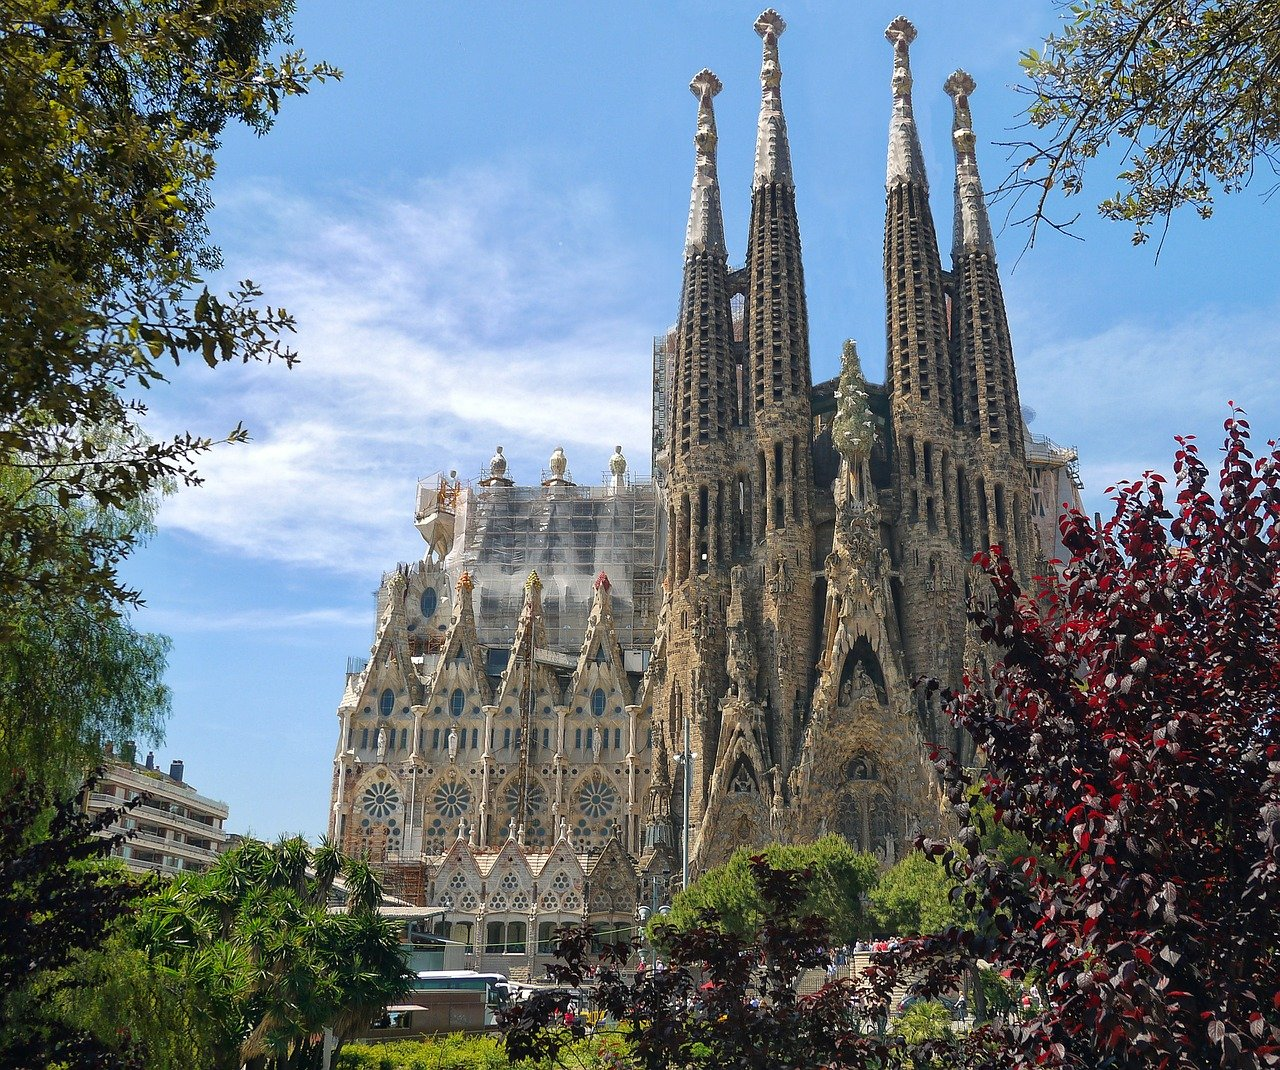 Barcelona, Spain, Most Visited Cities in the World